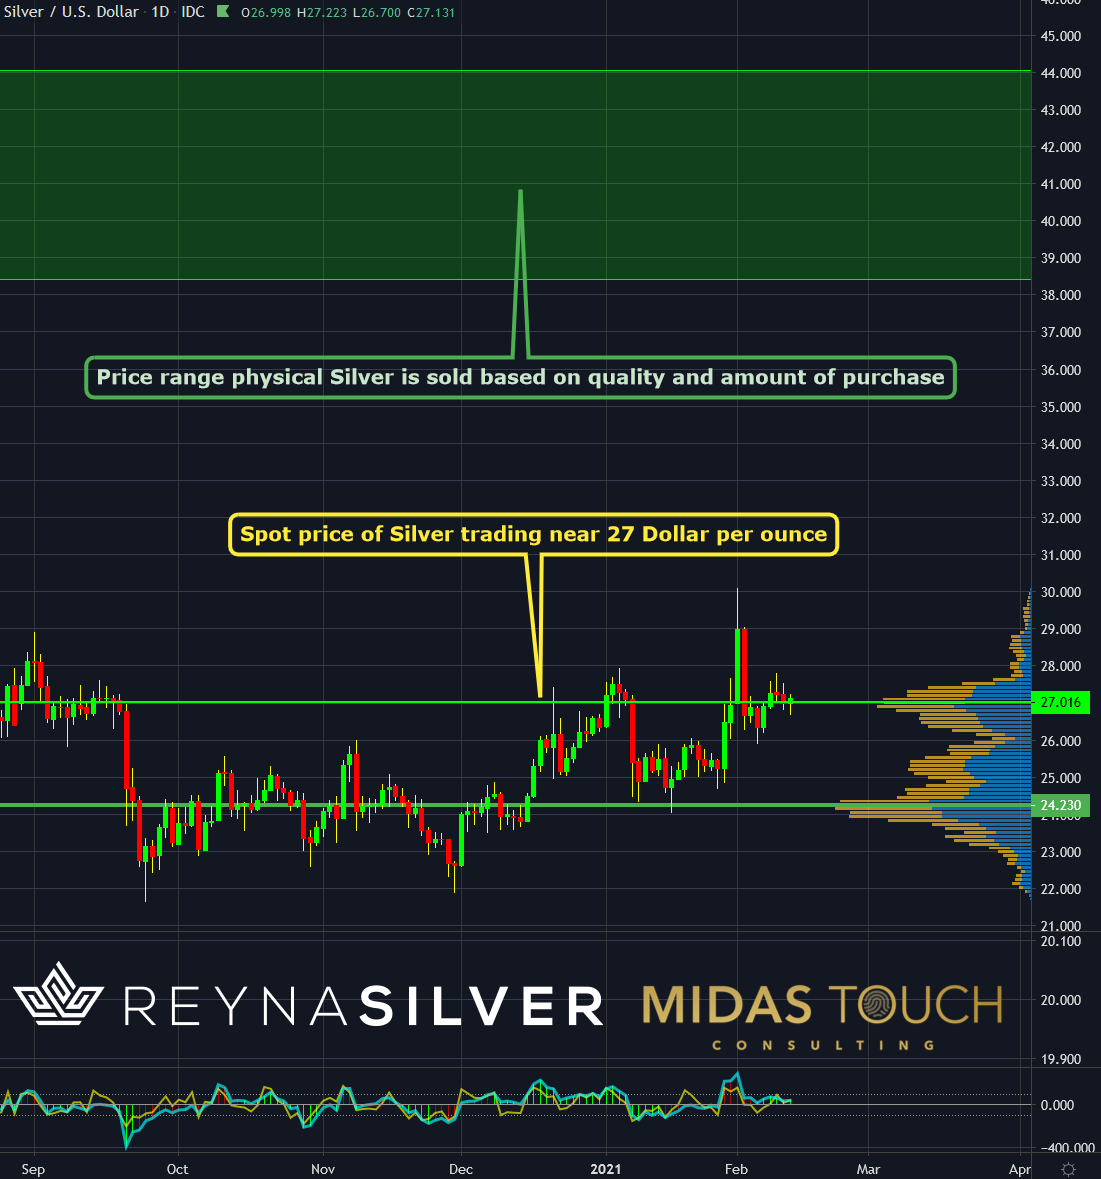 Silver in US Dollar, daily chart as of February 11th, 2021.